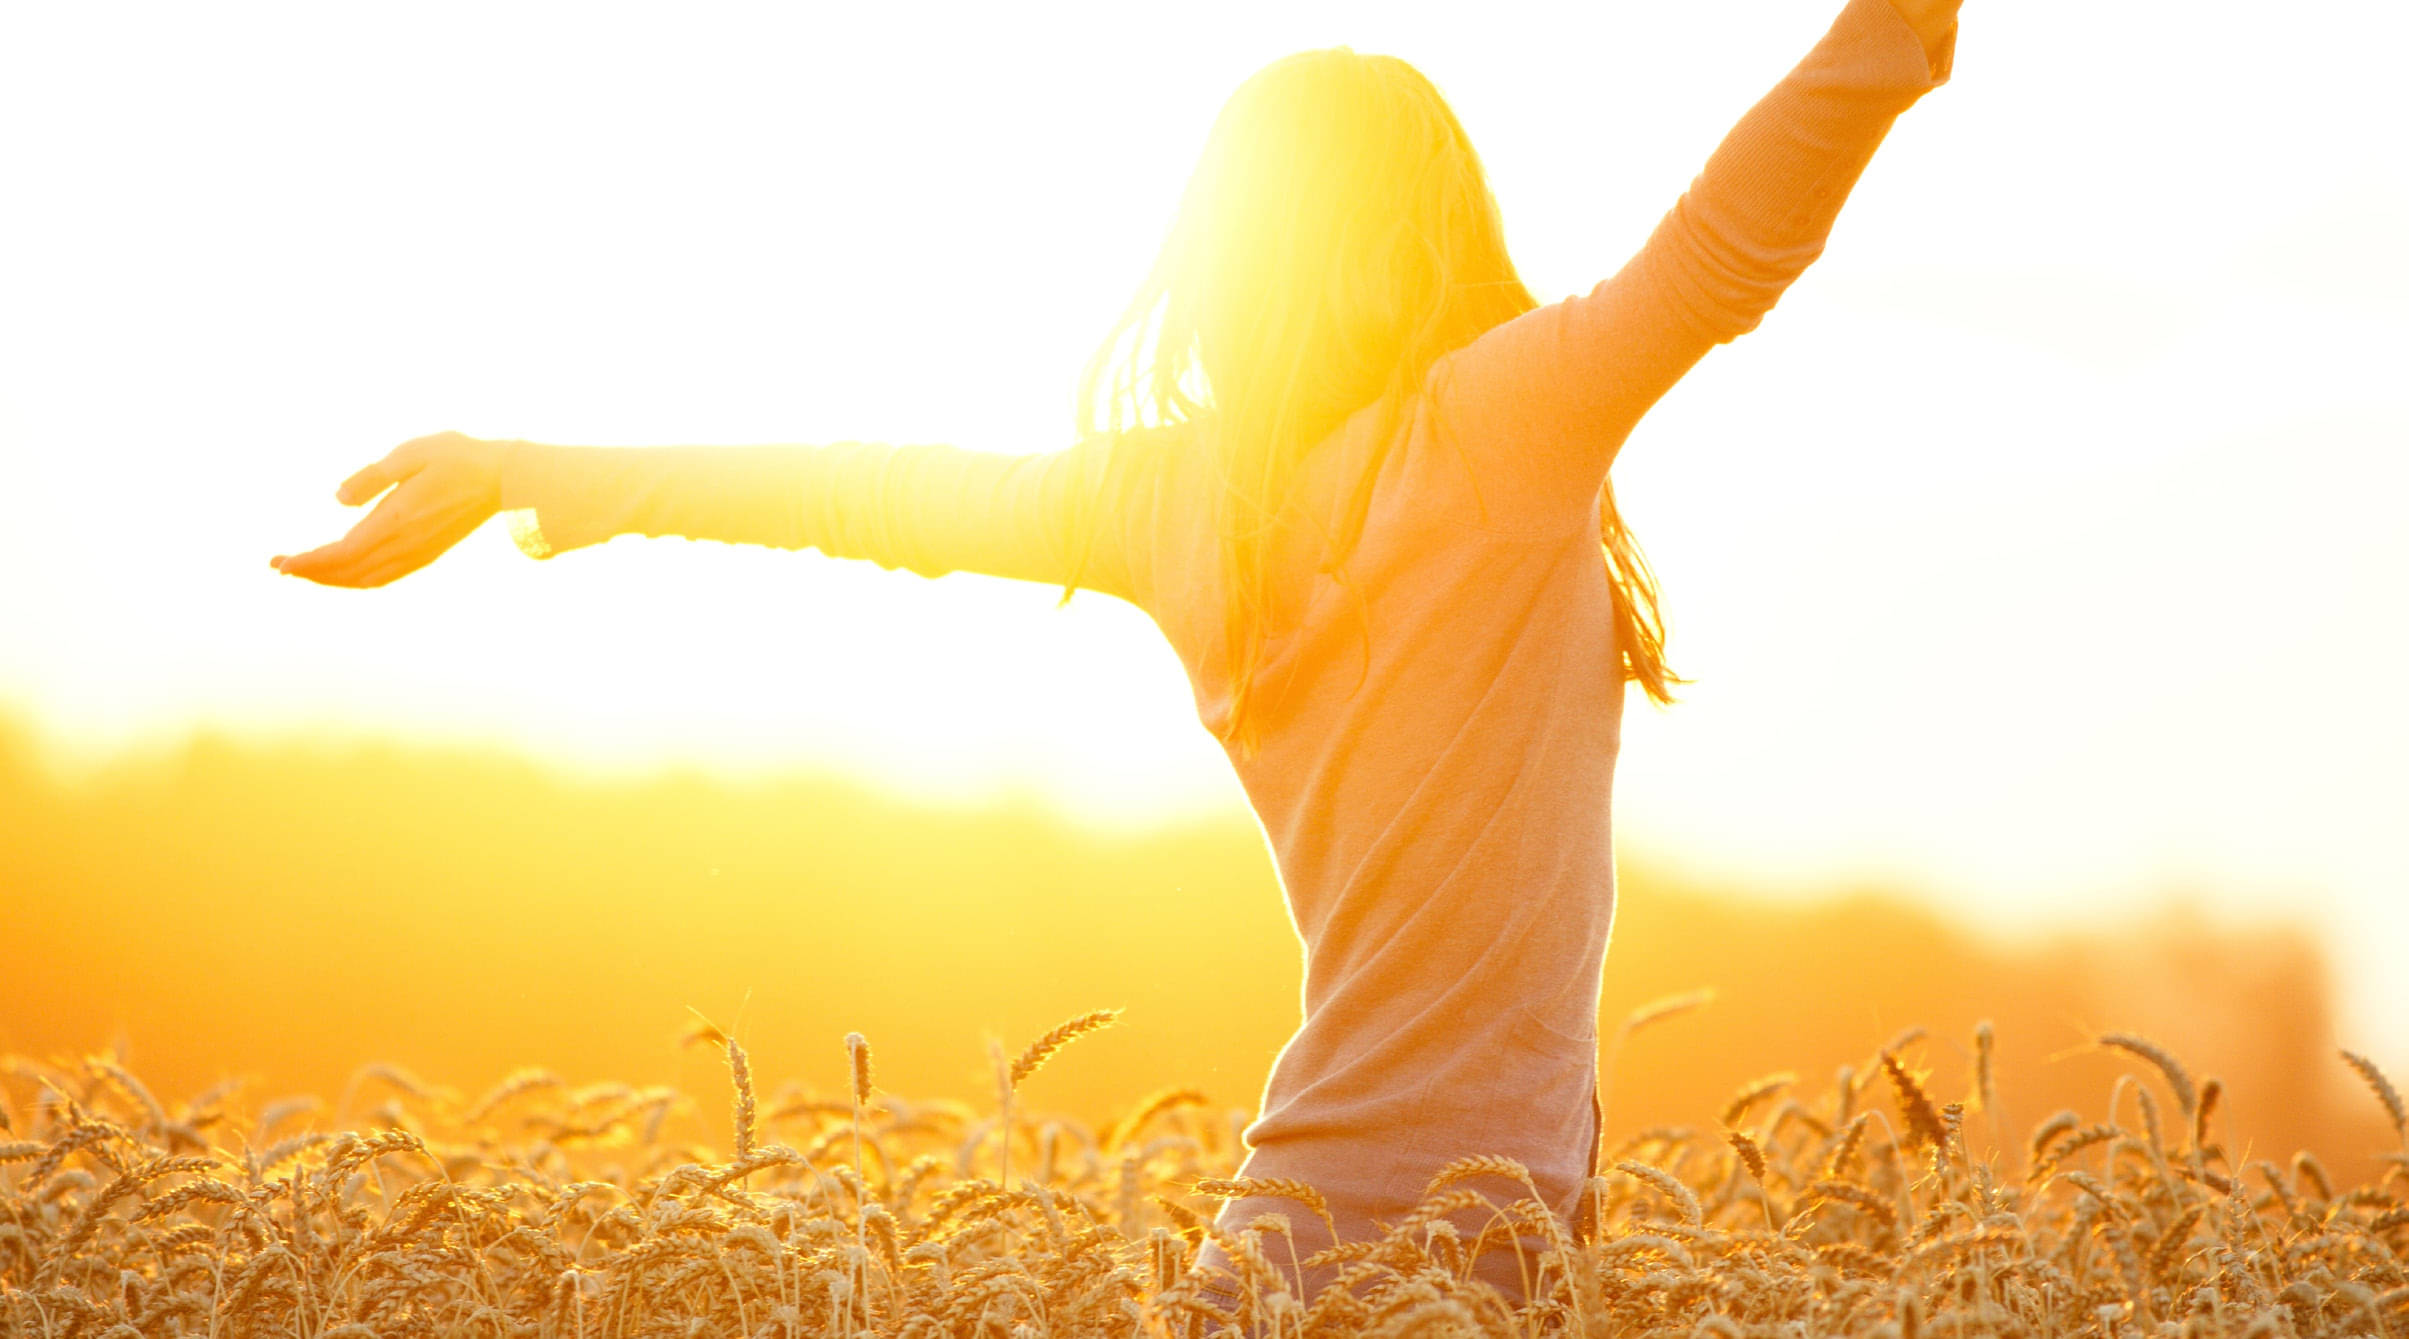 STUDY SUGGESTS - Vitamin D MAY HELP THE BODY FIGHT INFECTION